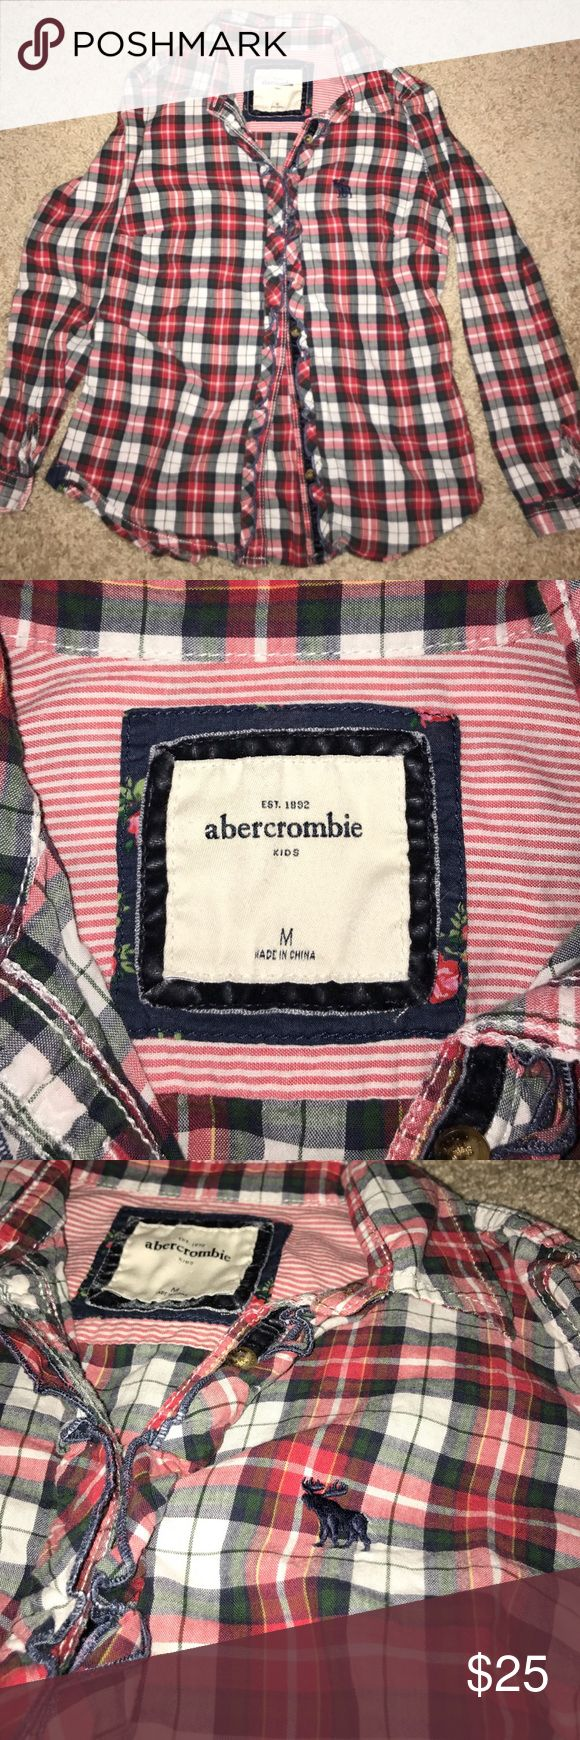 Abercrombie Kids red plaid shirt. Size M red/green/navy blue plaid shirt from Abercrombie Kids. Size Medium. Well taken care of. abercrombie kids Shirts & Tops Button Down Shirts